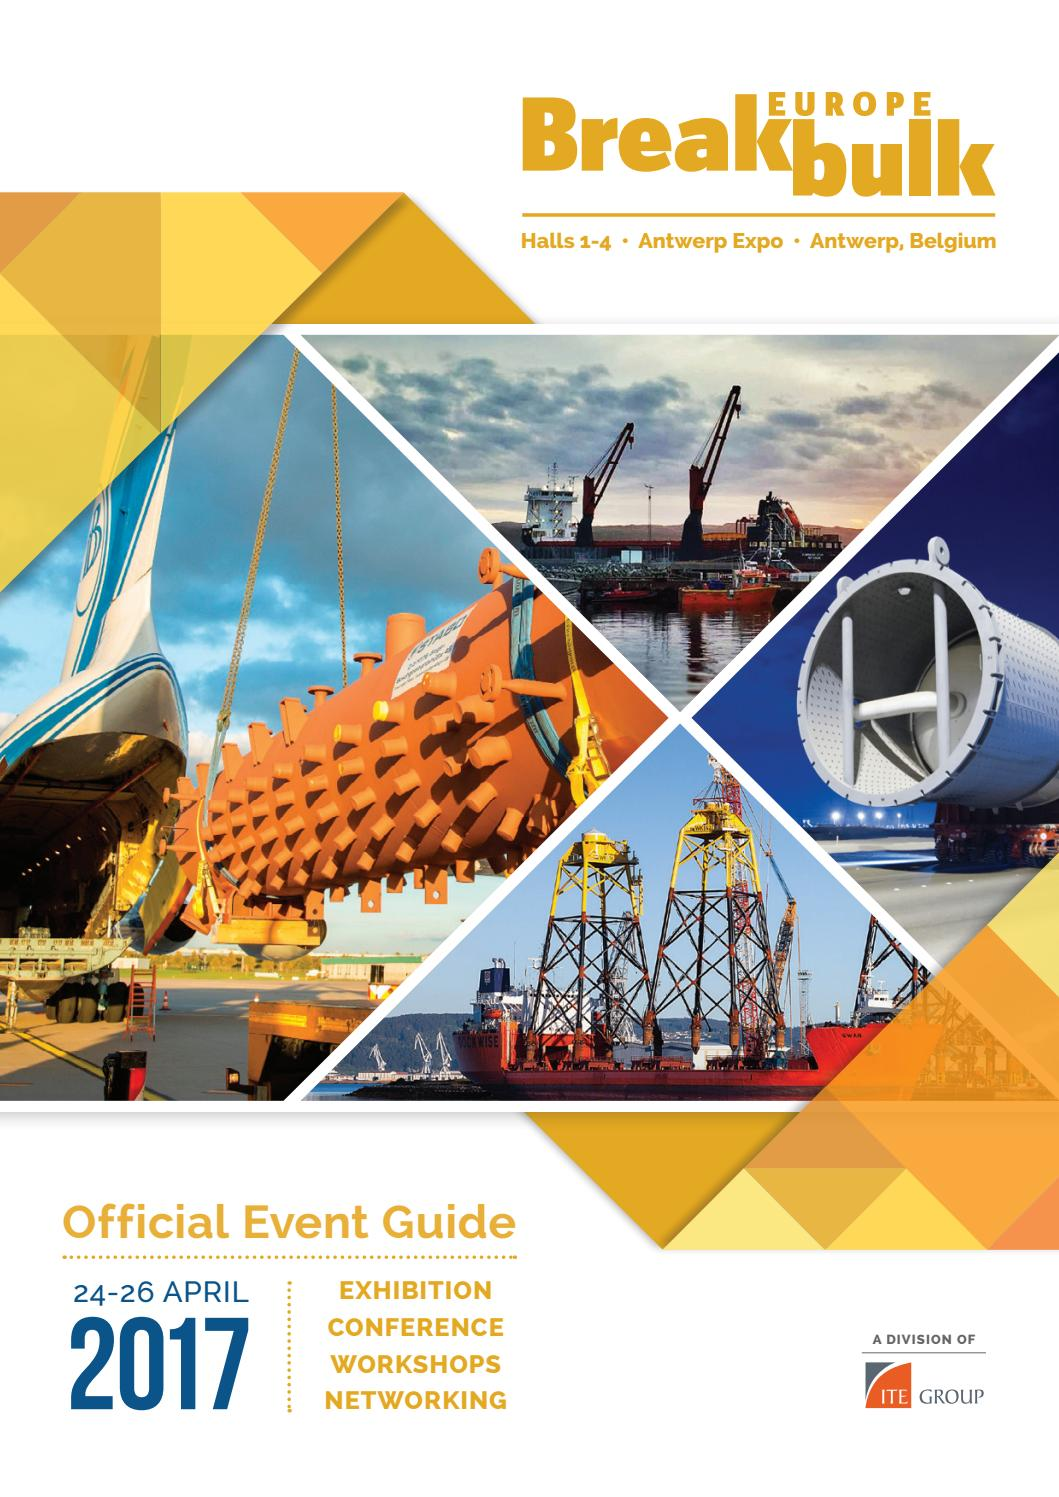 OJSC North-West Shipping Company: history. Services, reviews